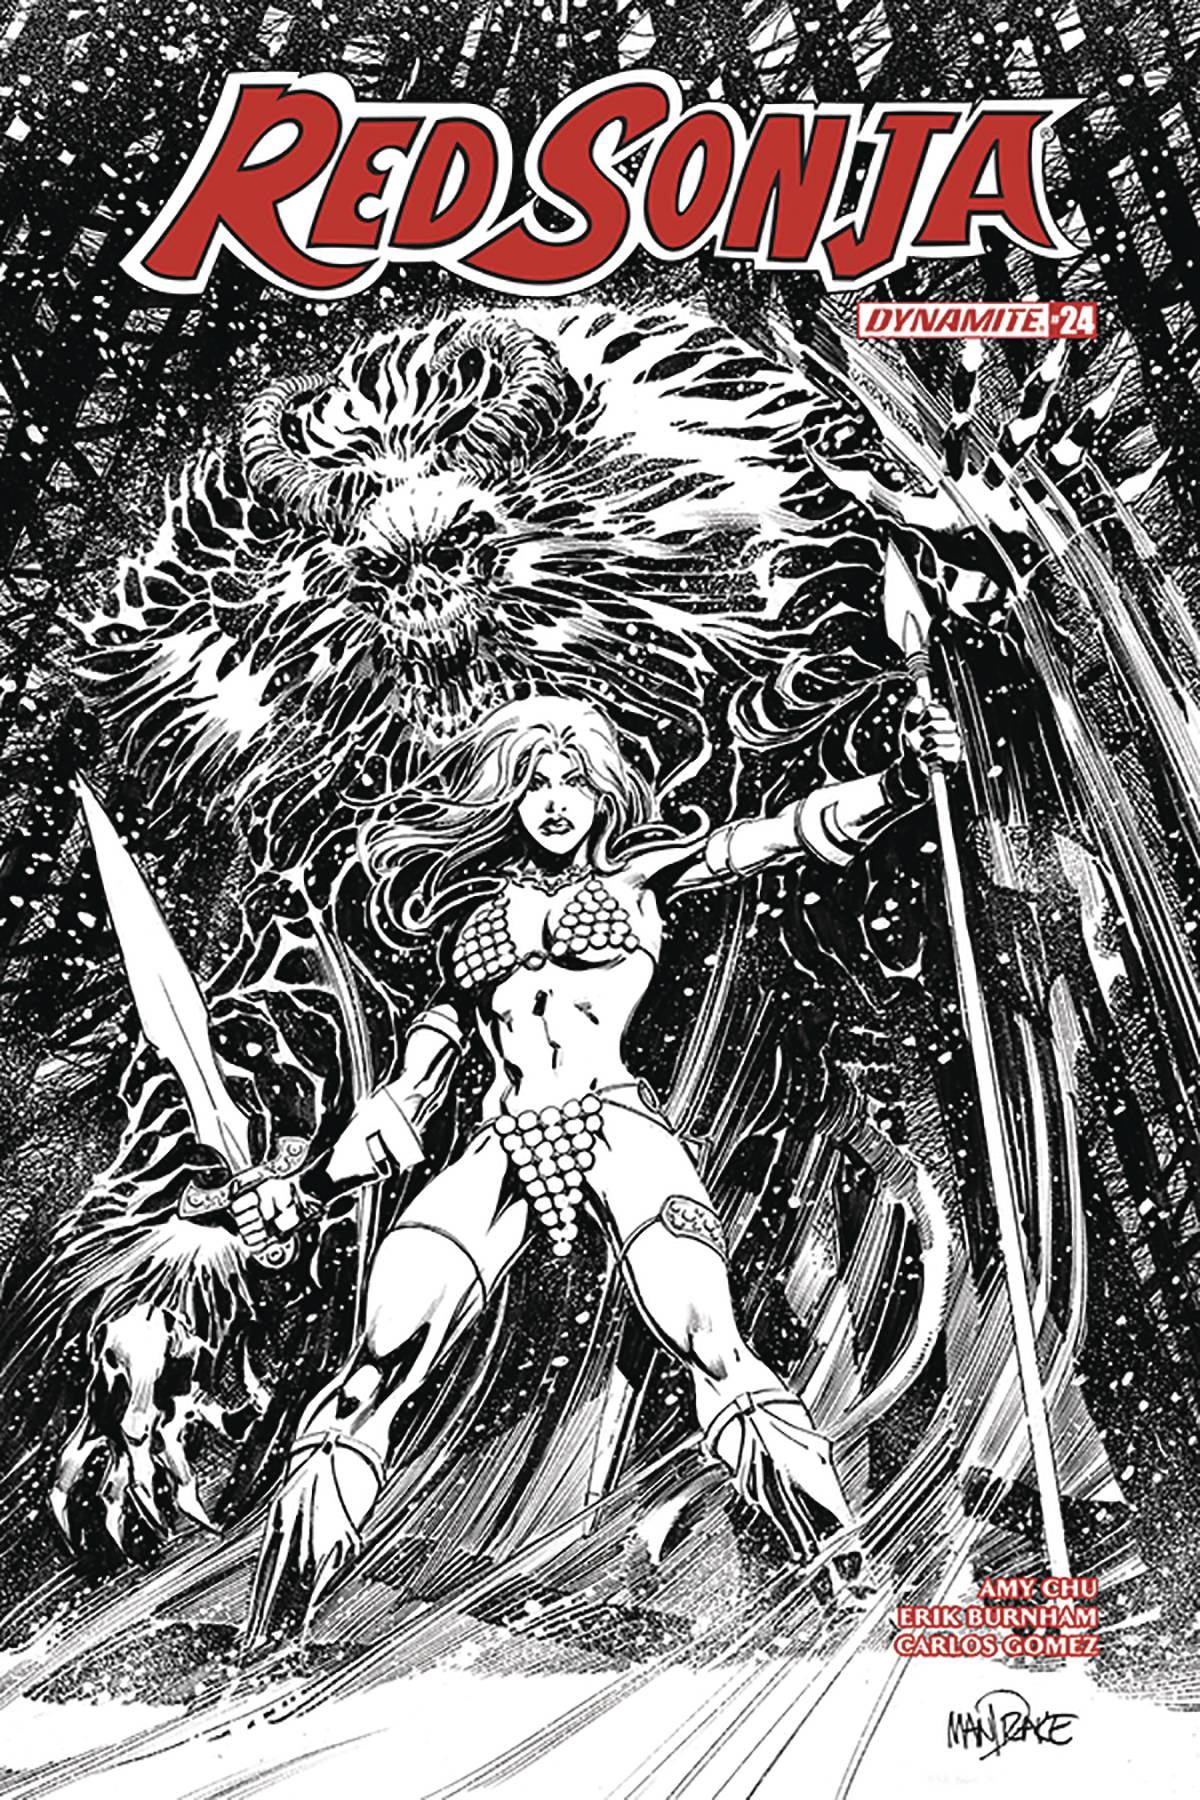 RED SONJA 24 25 COPY MANDRAKE B&W INCV.jpg